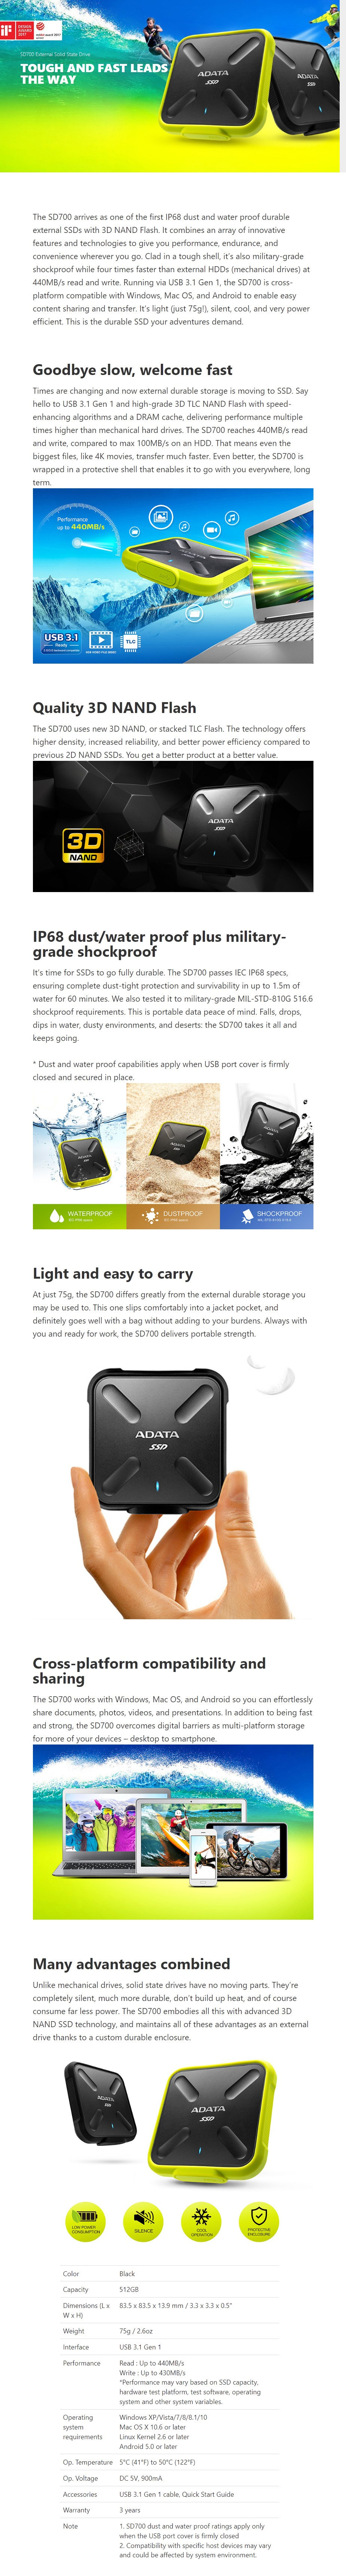 Adata SD700 512GB USB 3.1 Portable External Rugged SSD Hard Drive - Black  - Overview 1